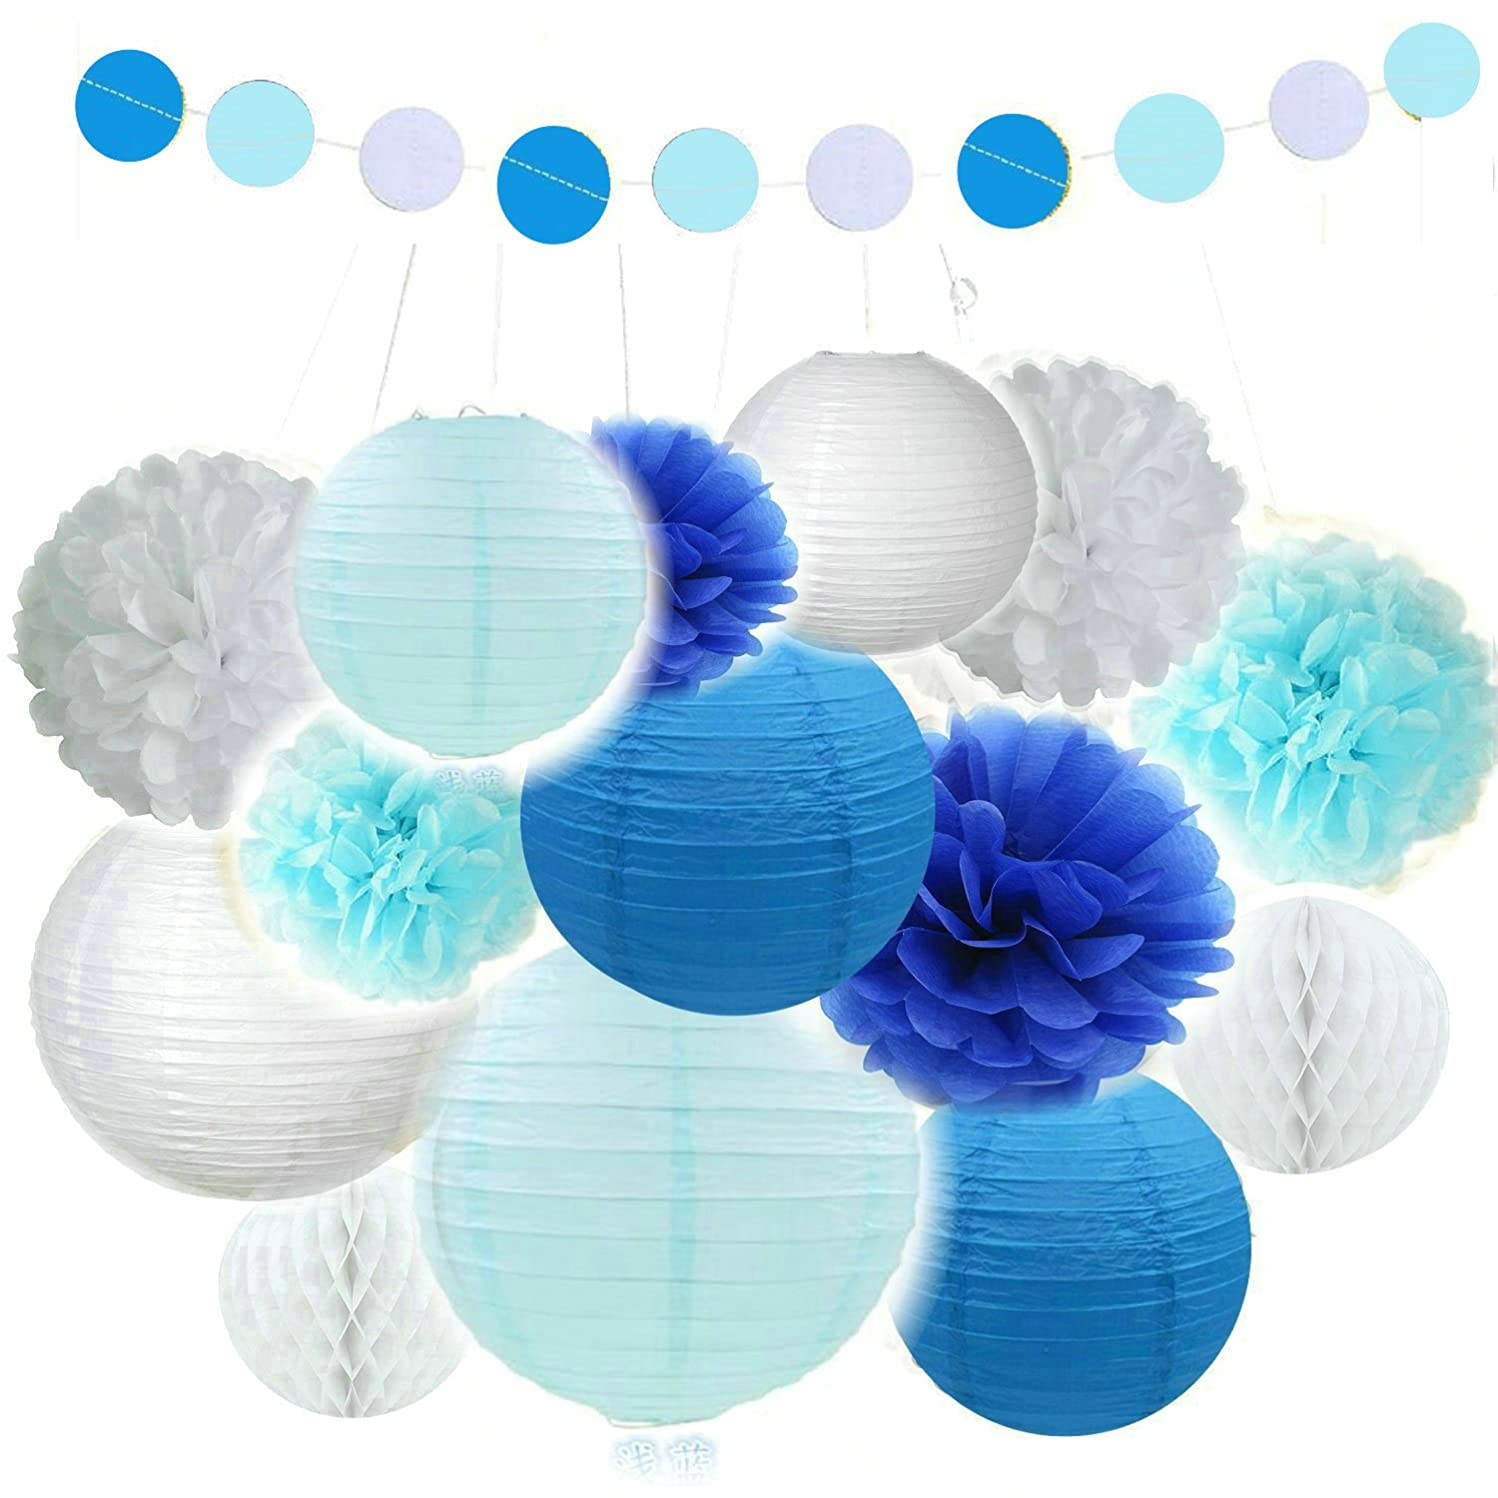 Fascola Mixed White Baby Blue White Party Decoration Kit Tissue Paper Pom Poms Flowers Paper Lanterns and Circle Dots Garlands for Birthday,Baby,Bridal Shower,Room decor &Themed Party Decoration Favor